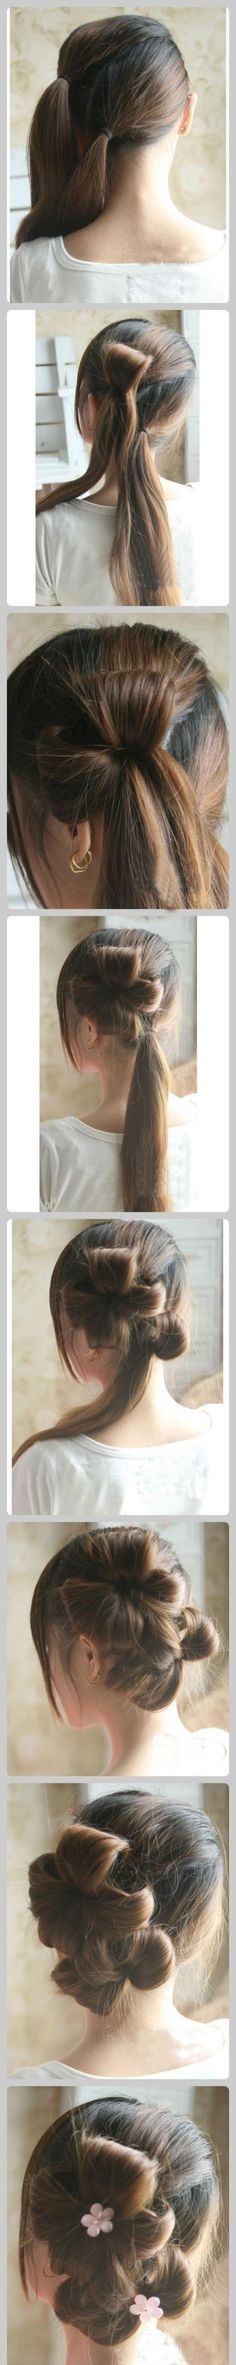 Ribbon updo... Enjoy!